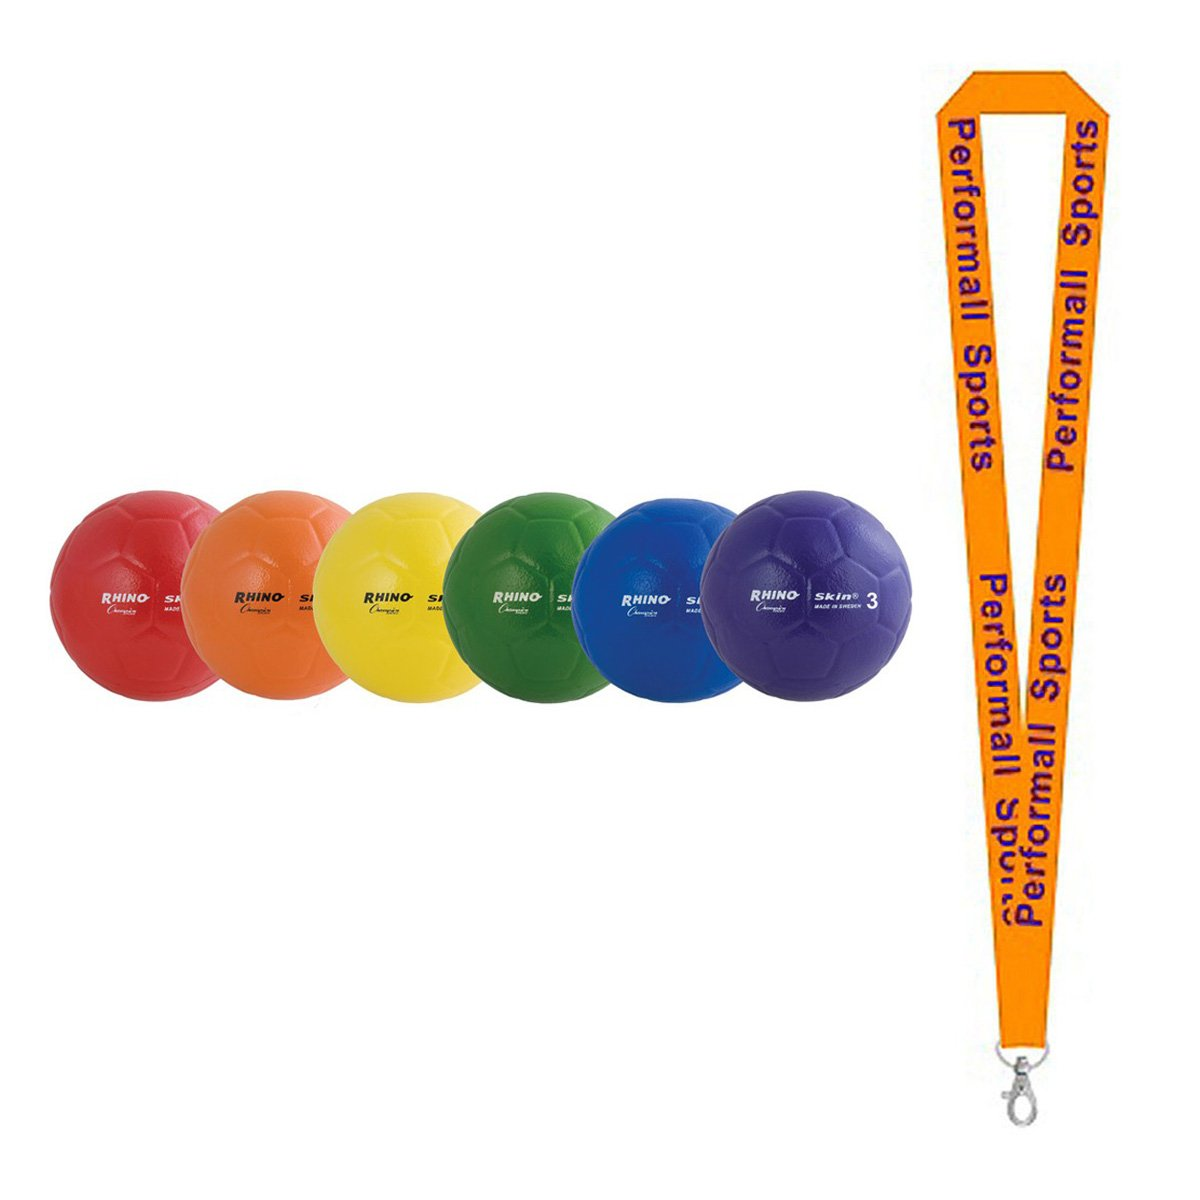 Champion Sports Rhino Skin Ball Set Assorted (Set of 6) with 1 Performall Lanyard RS73SET-1P by Performall Sports Dodgeballs